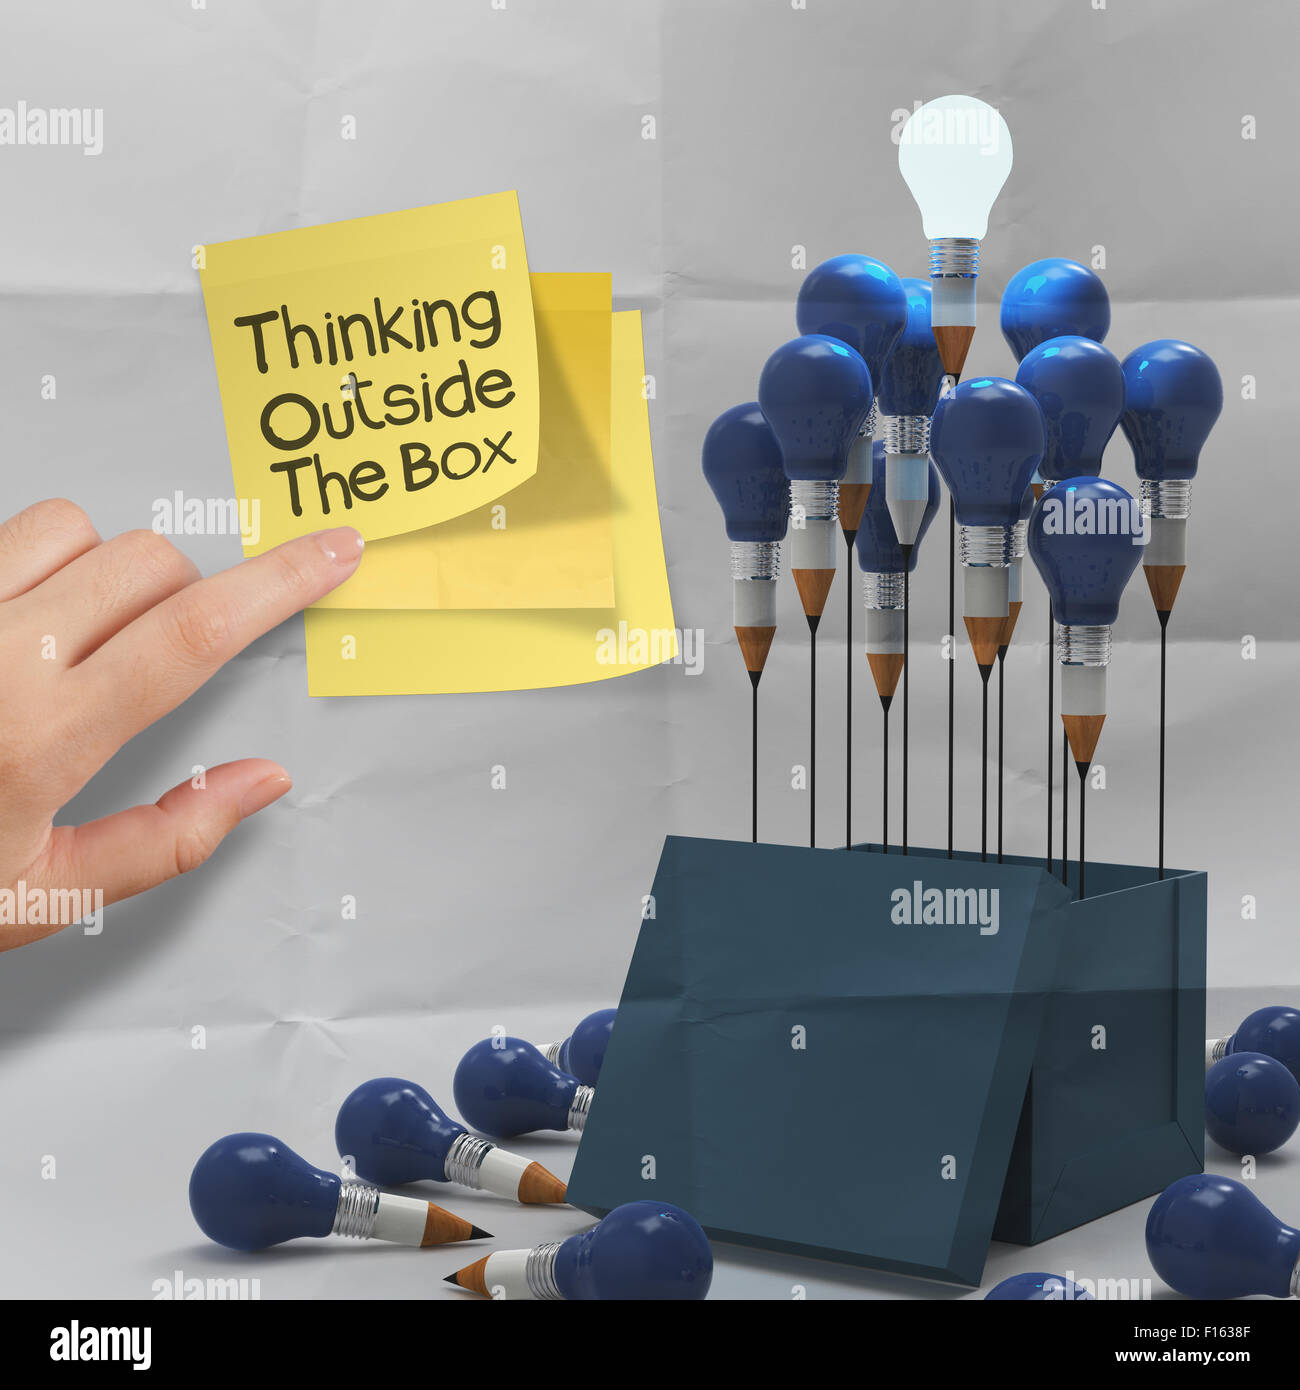 thinking outside the box on sticky note and pencil lightbilb as creative on crumpled paper - Stock Image